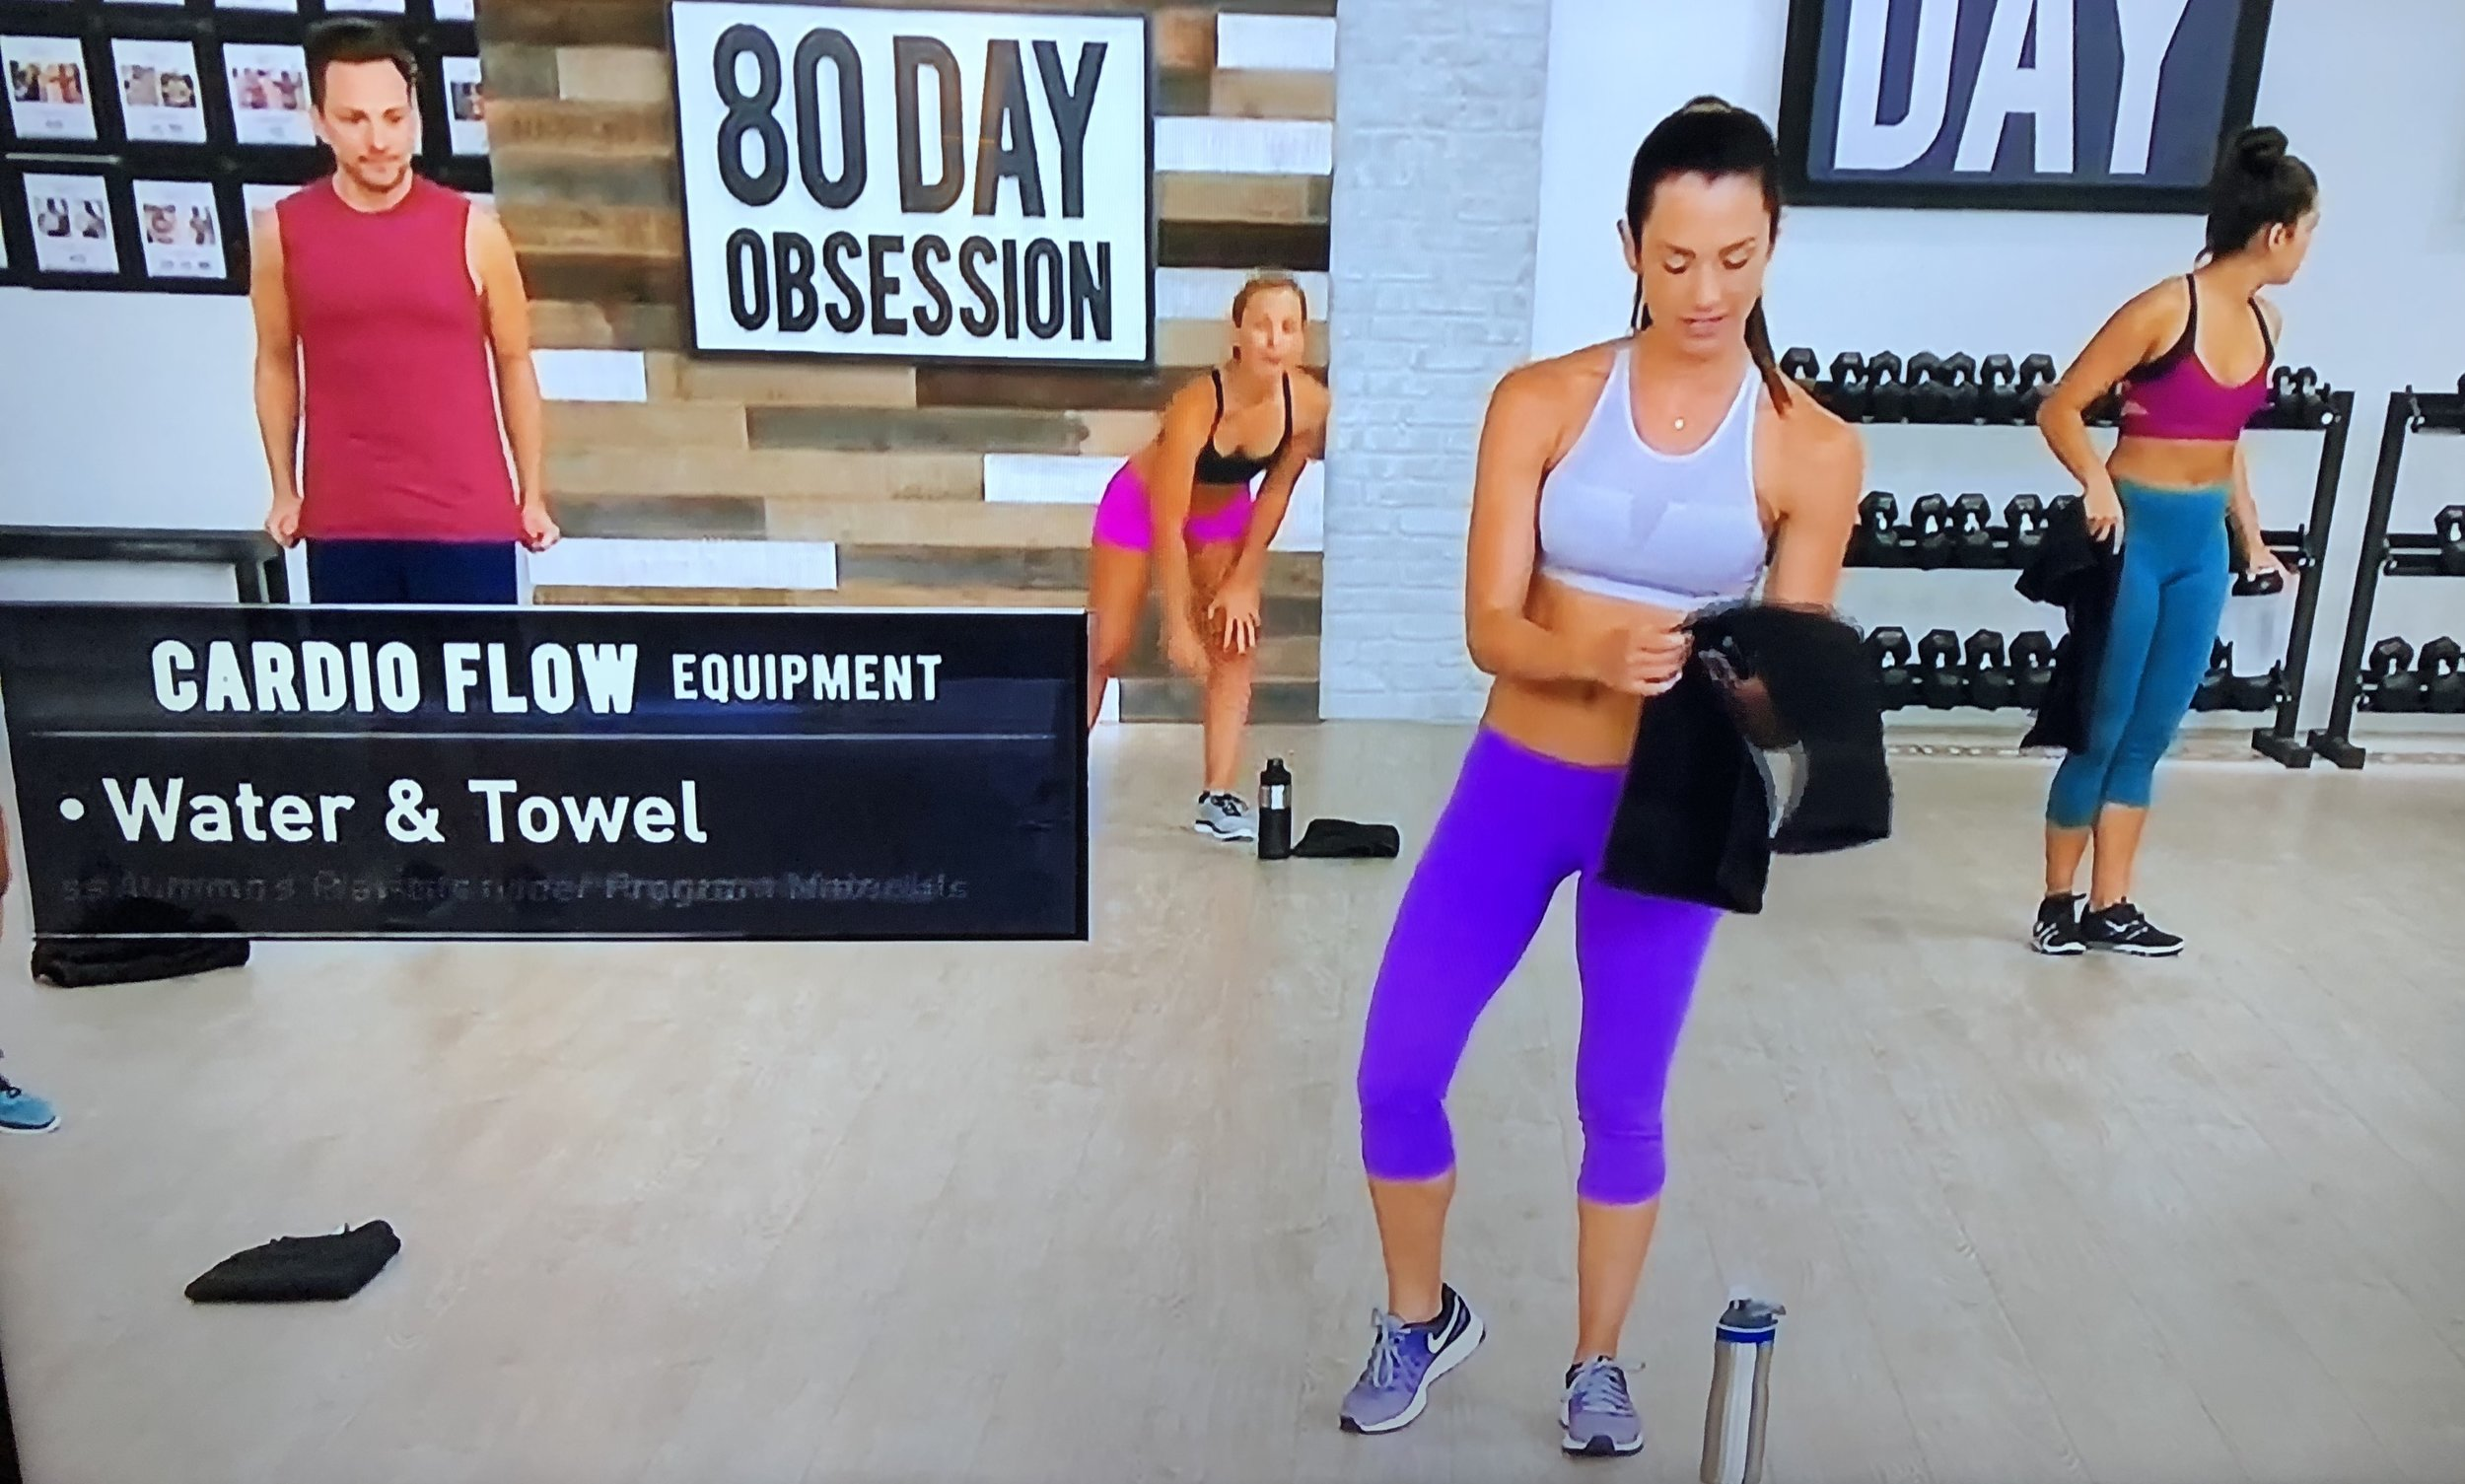 80 Day Obsession Pros And Cons. #80DayObsession #BeachBody #Exercise #Fitness #AutumCalabrese